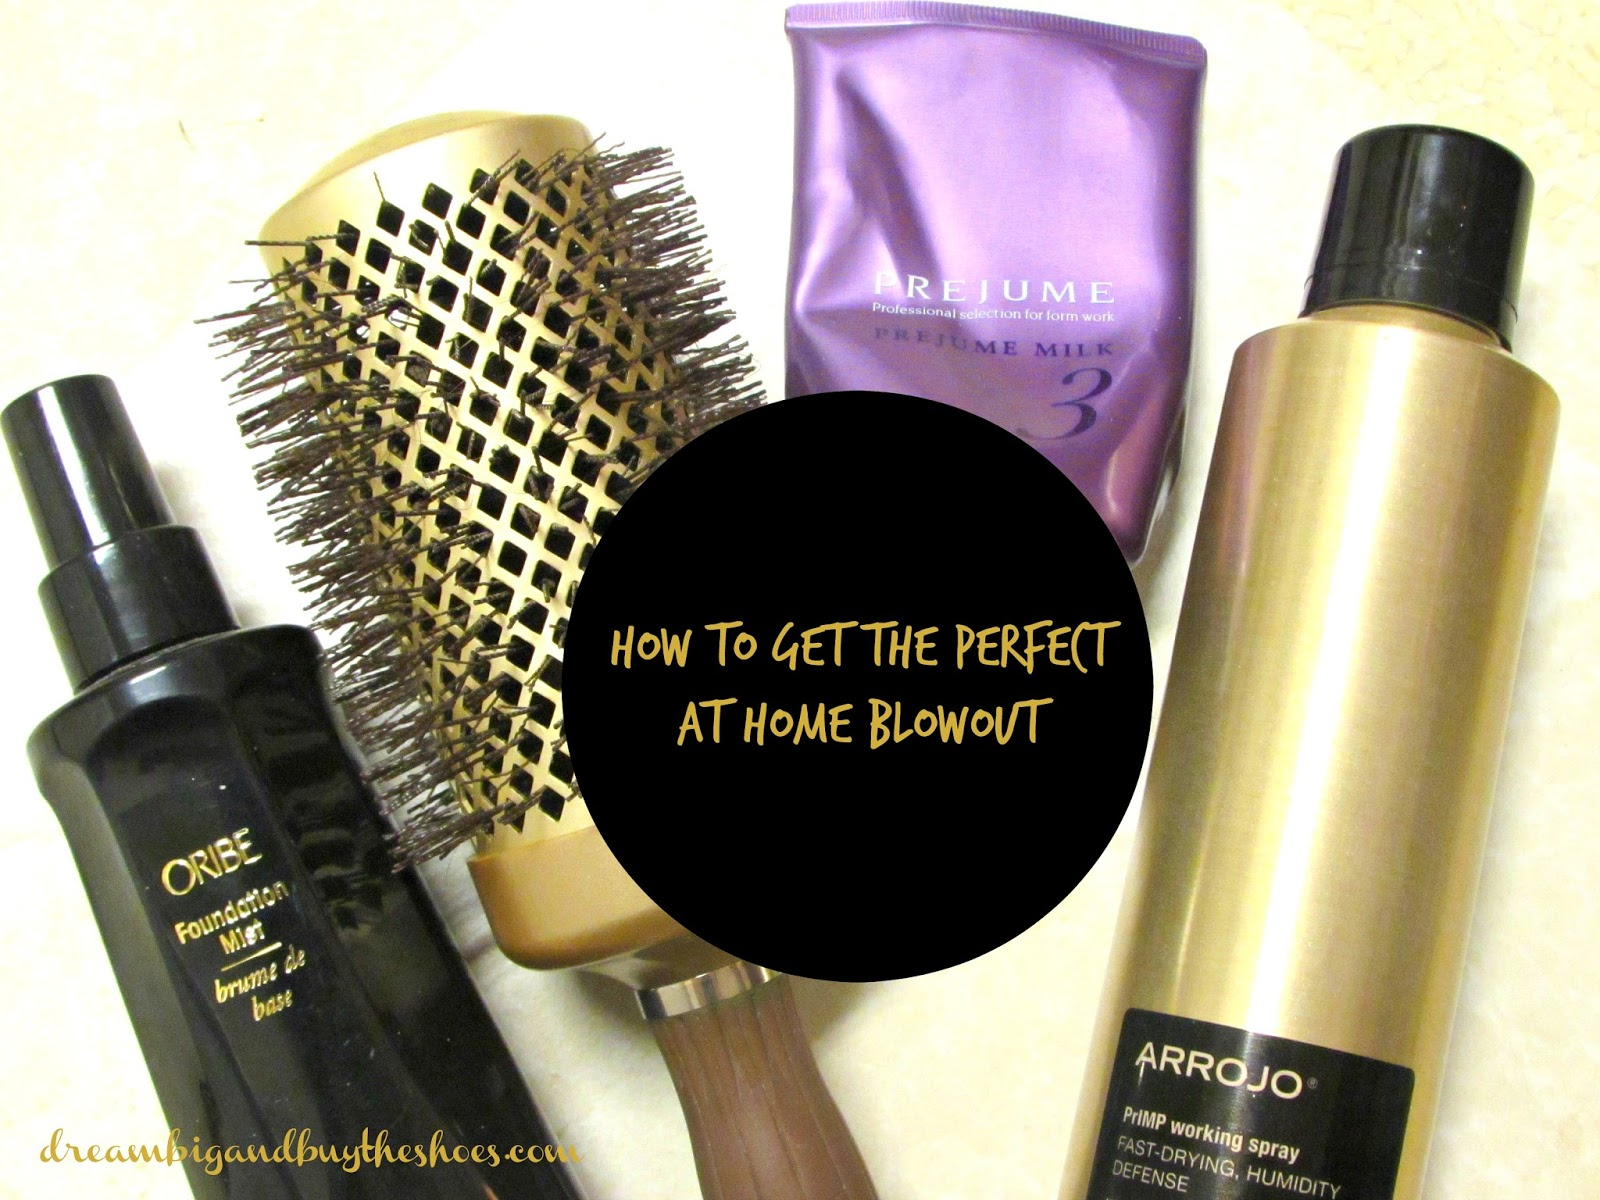 How To Get The Perfect At Home Blowout